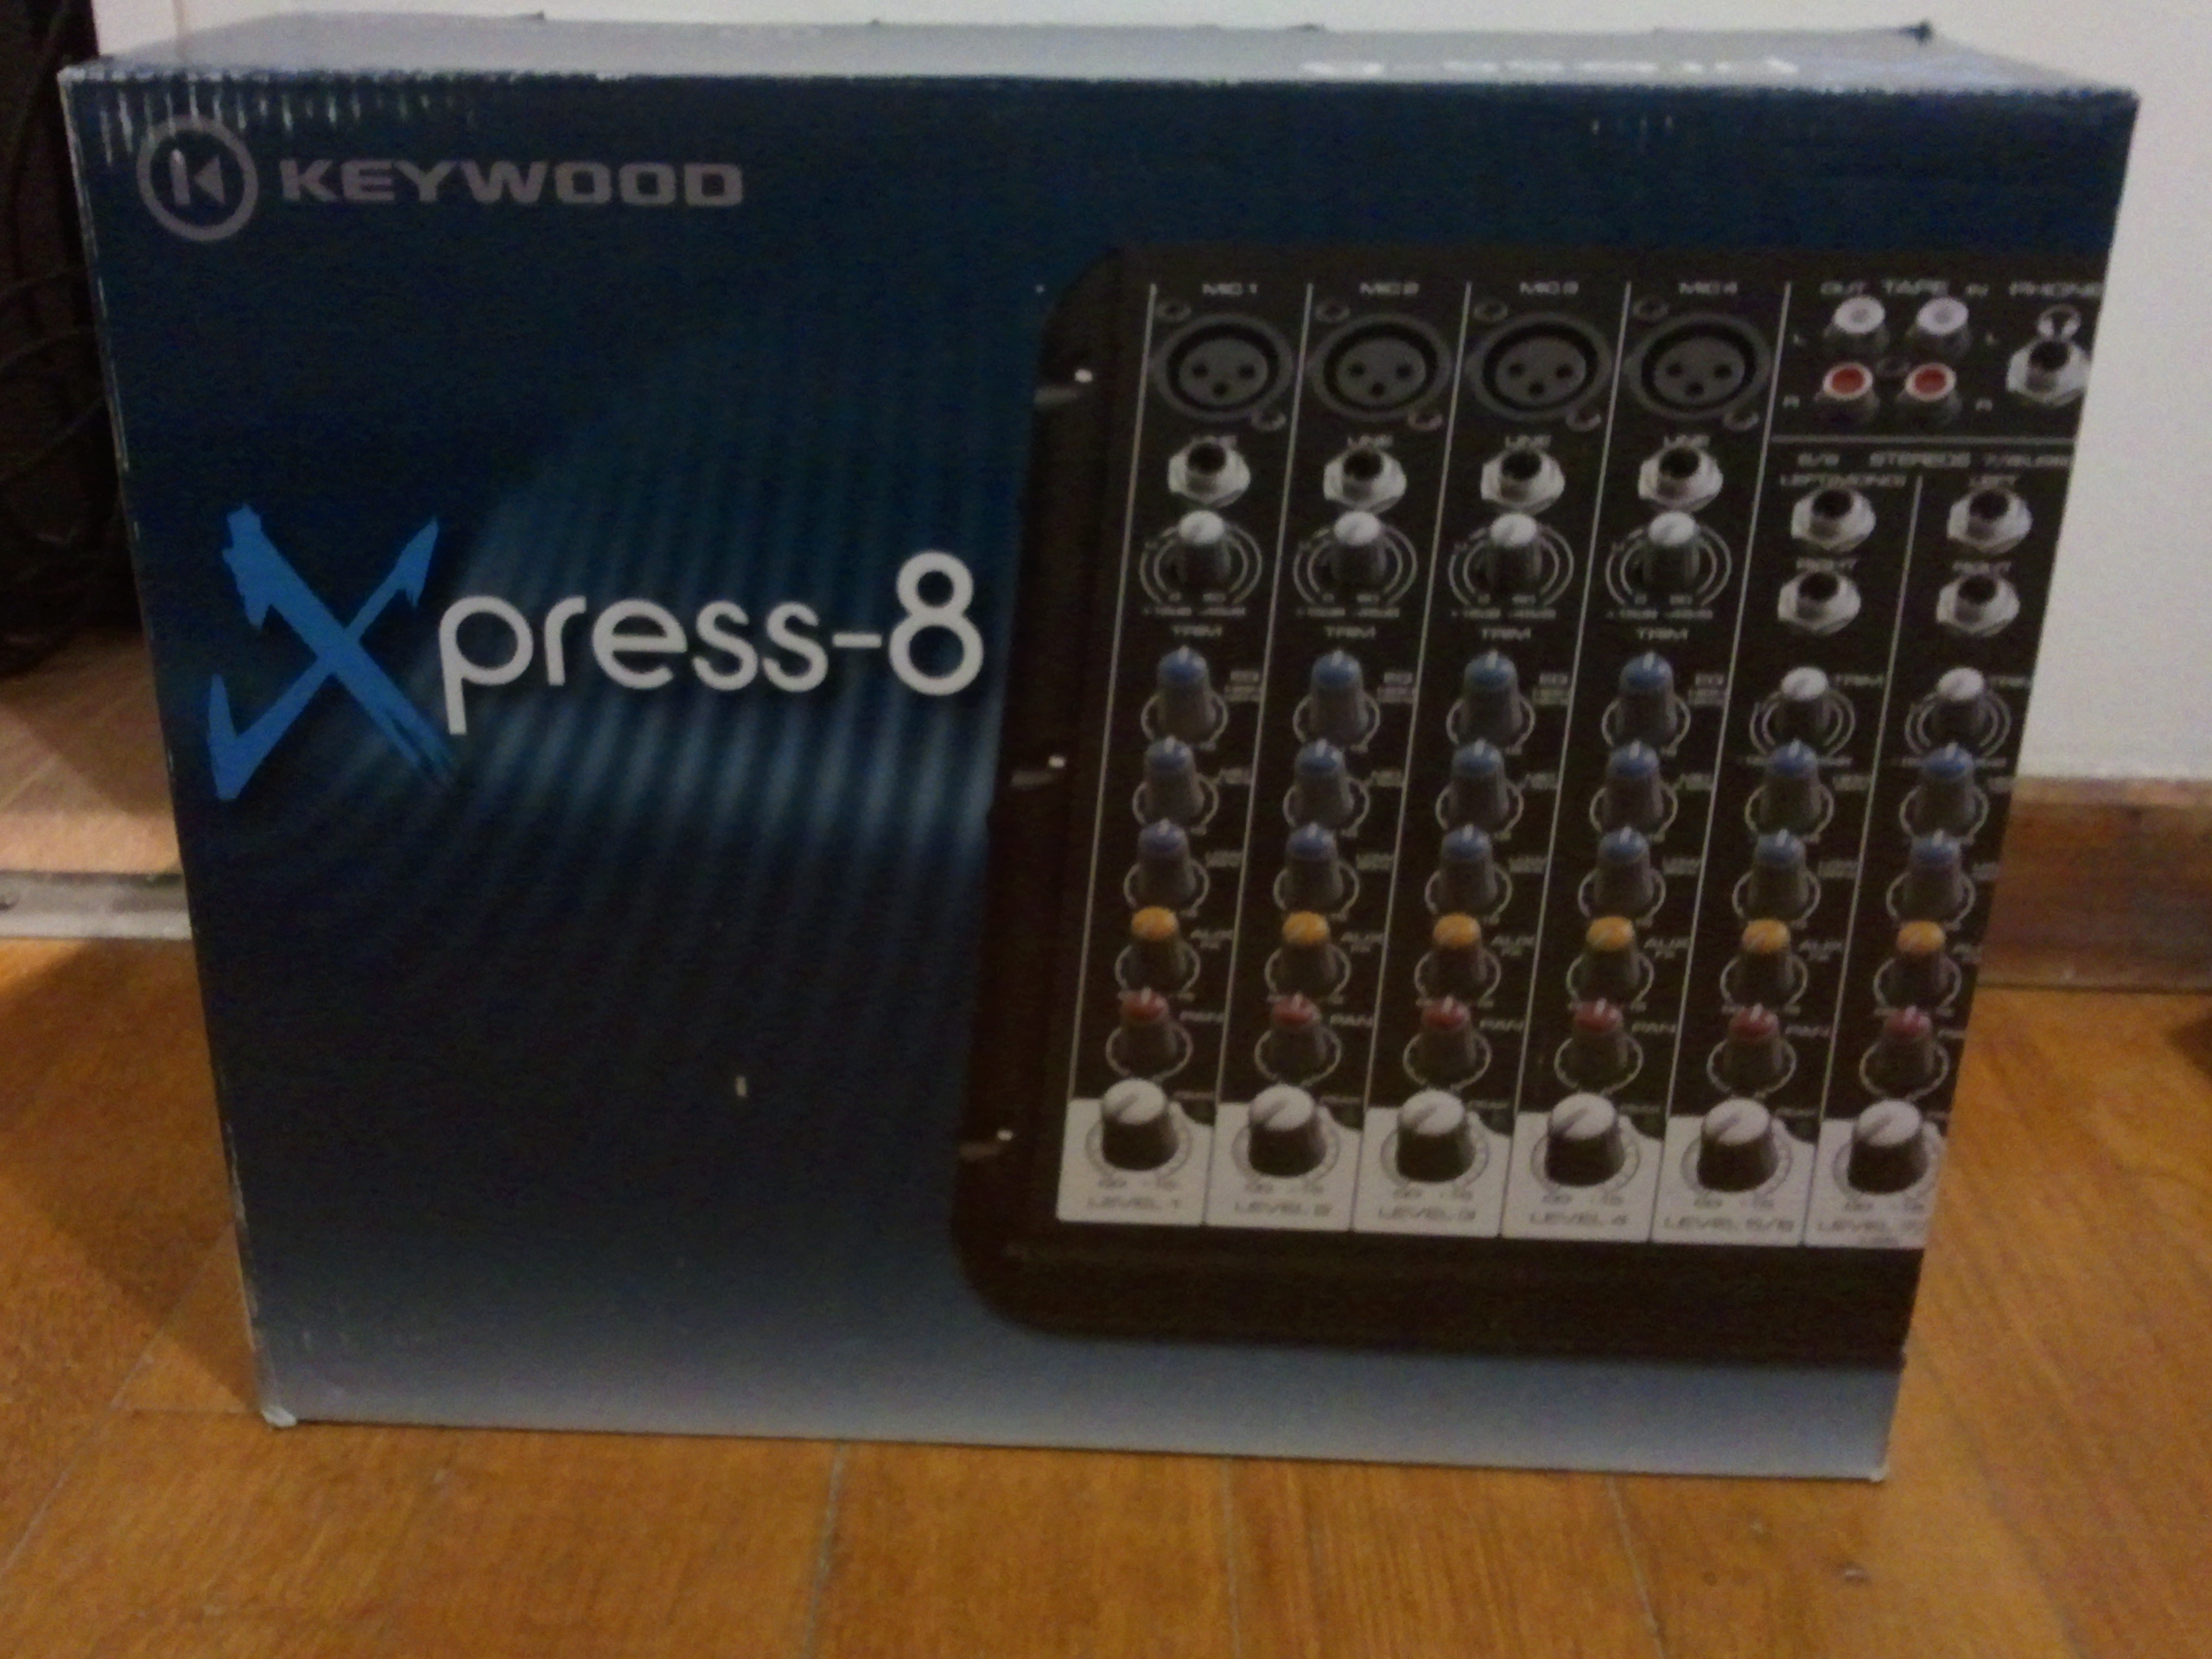 table de mixage xpress-8 keywood